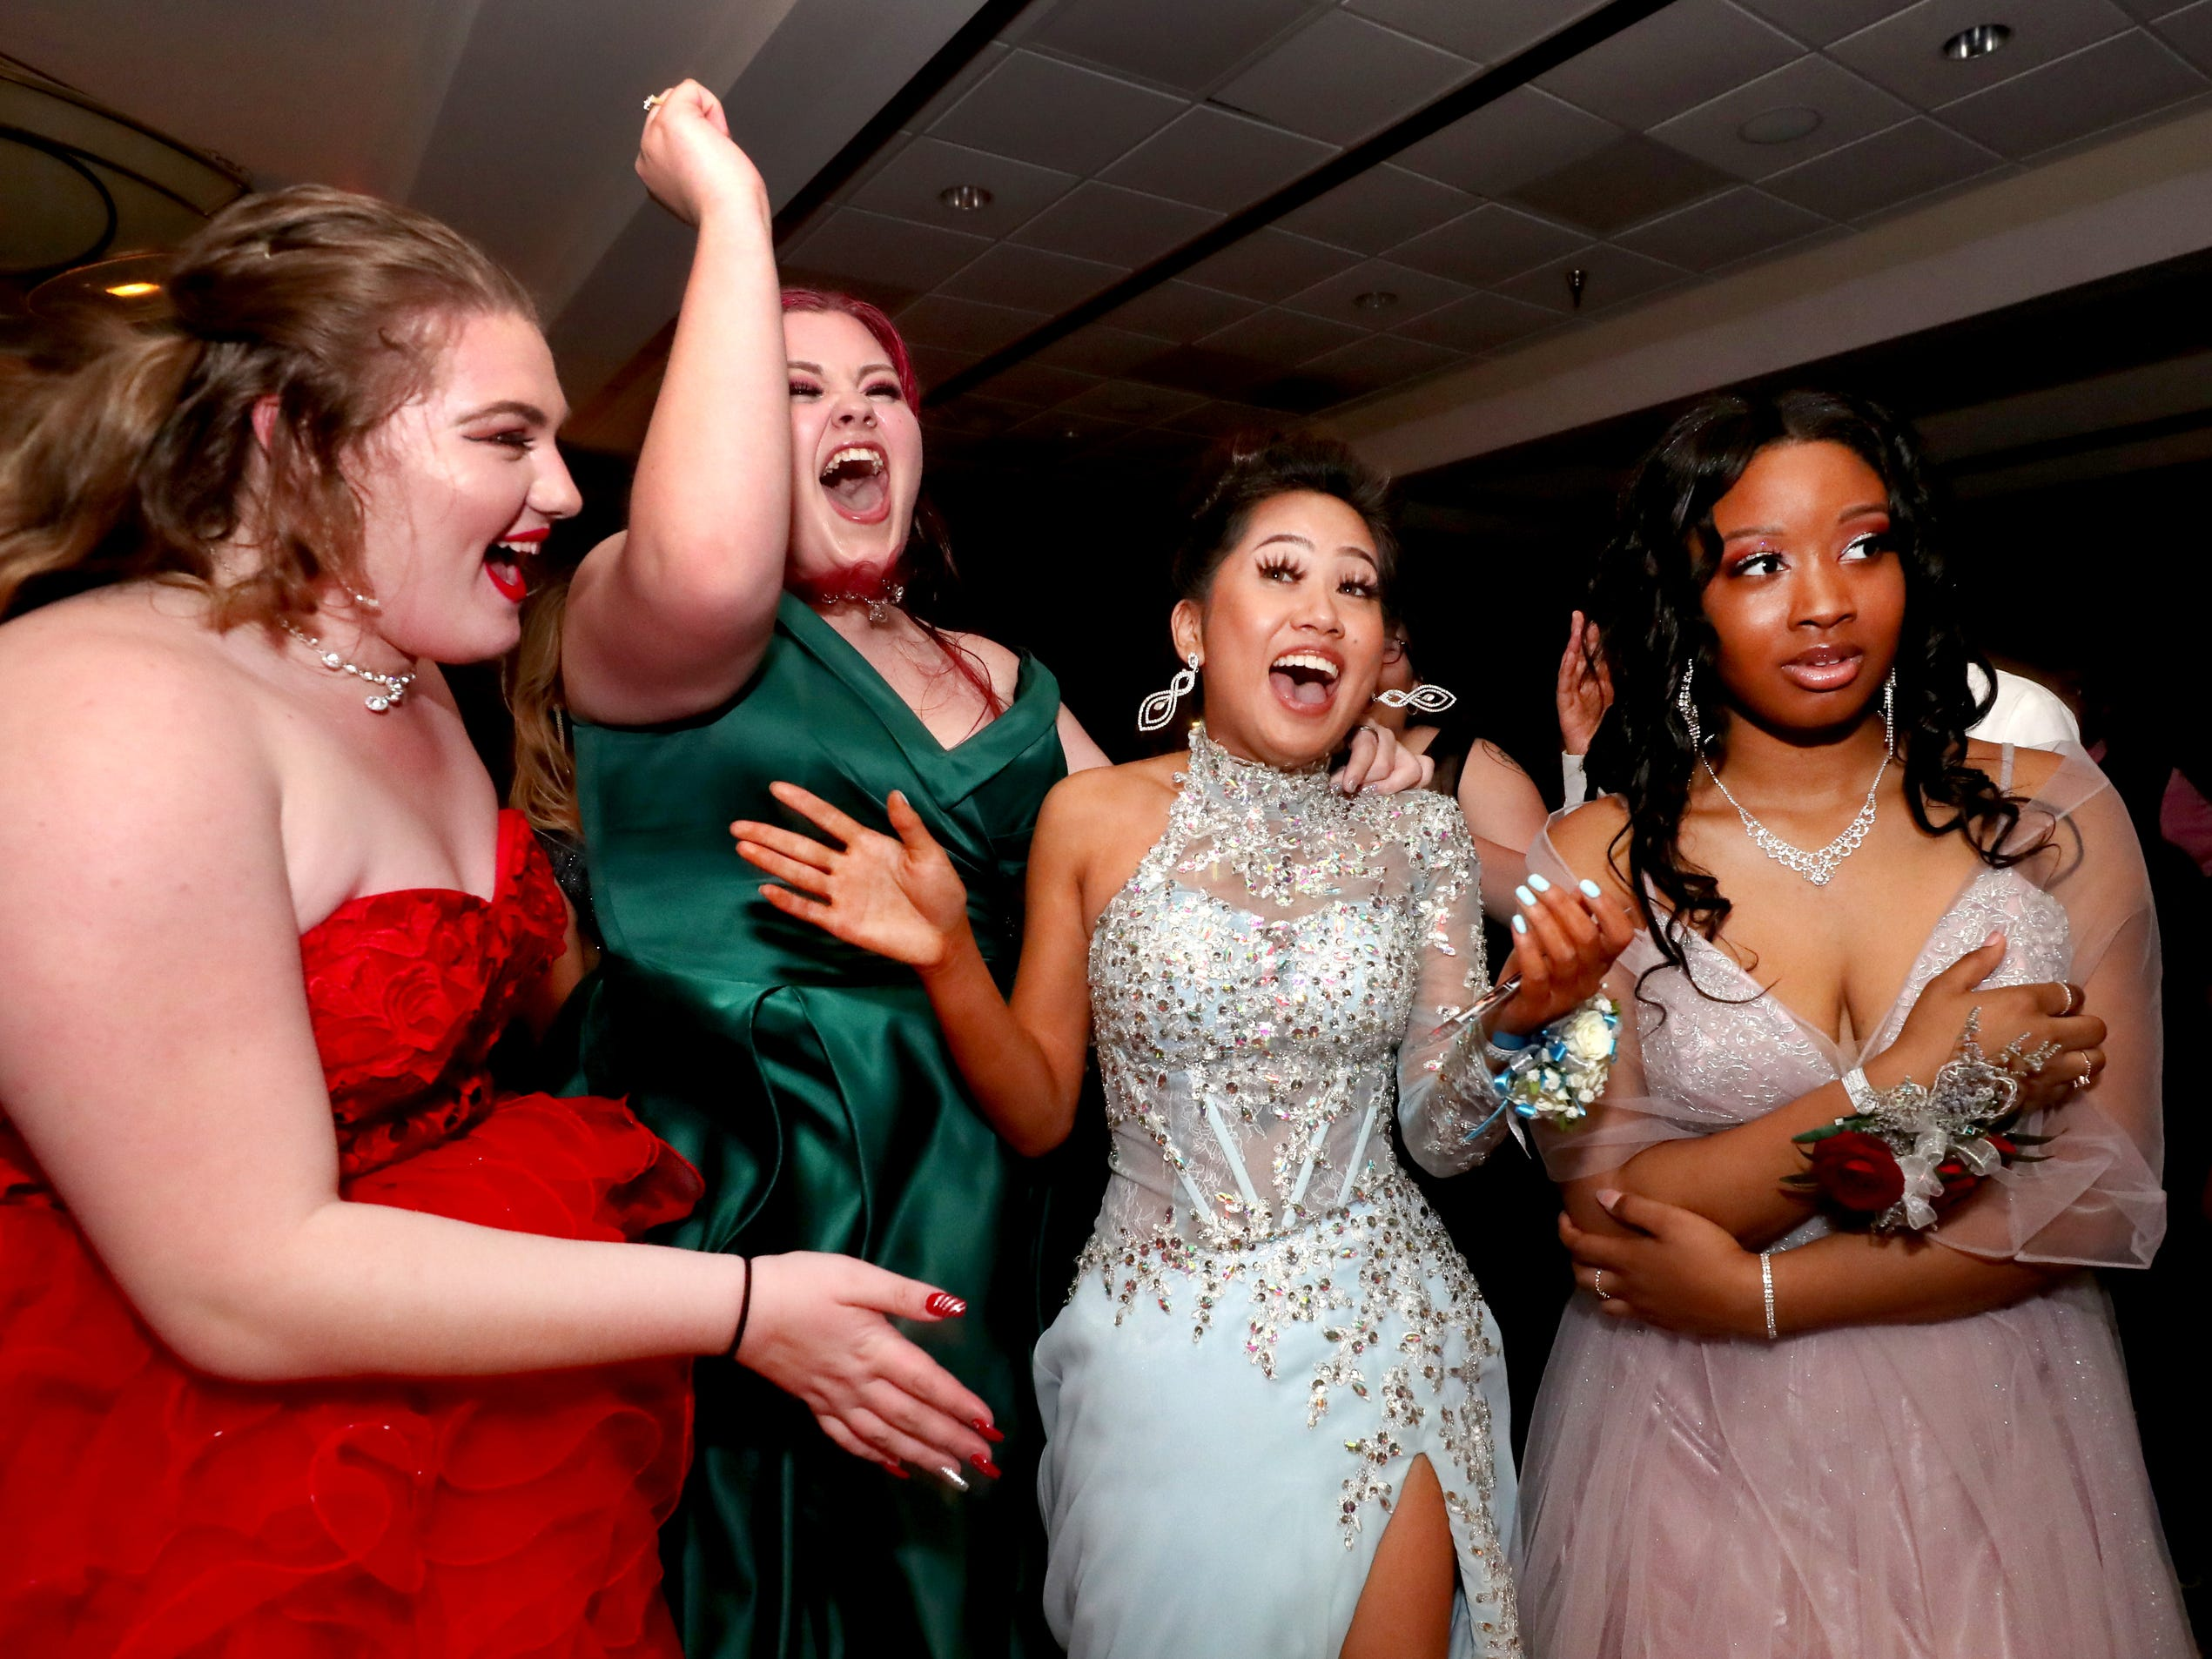 (L to R) Cortney Springer, Evie Douglas, Anna Kounboribounsak and Antoinette Sherrell react as Anna Kounboribounsak is announced as Holloway High's Prom Queen at Holloway's prom at the DoubleTree on Thursday April 18, 2019.